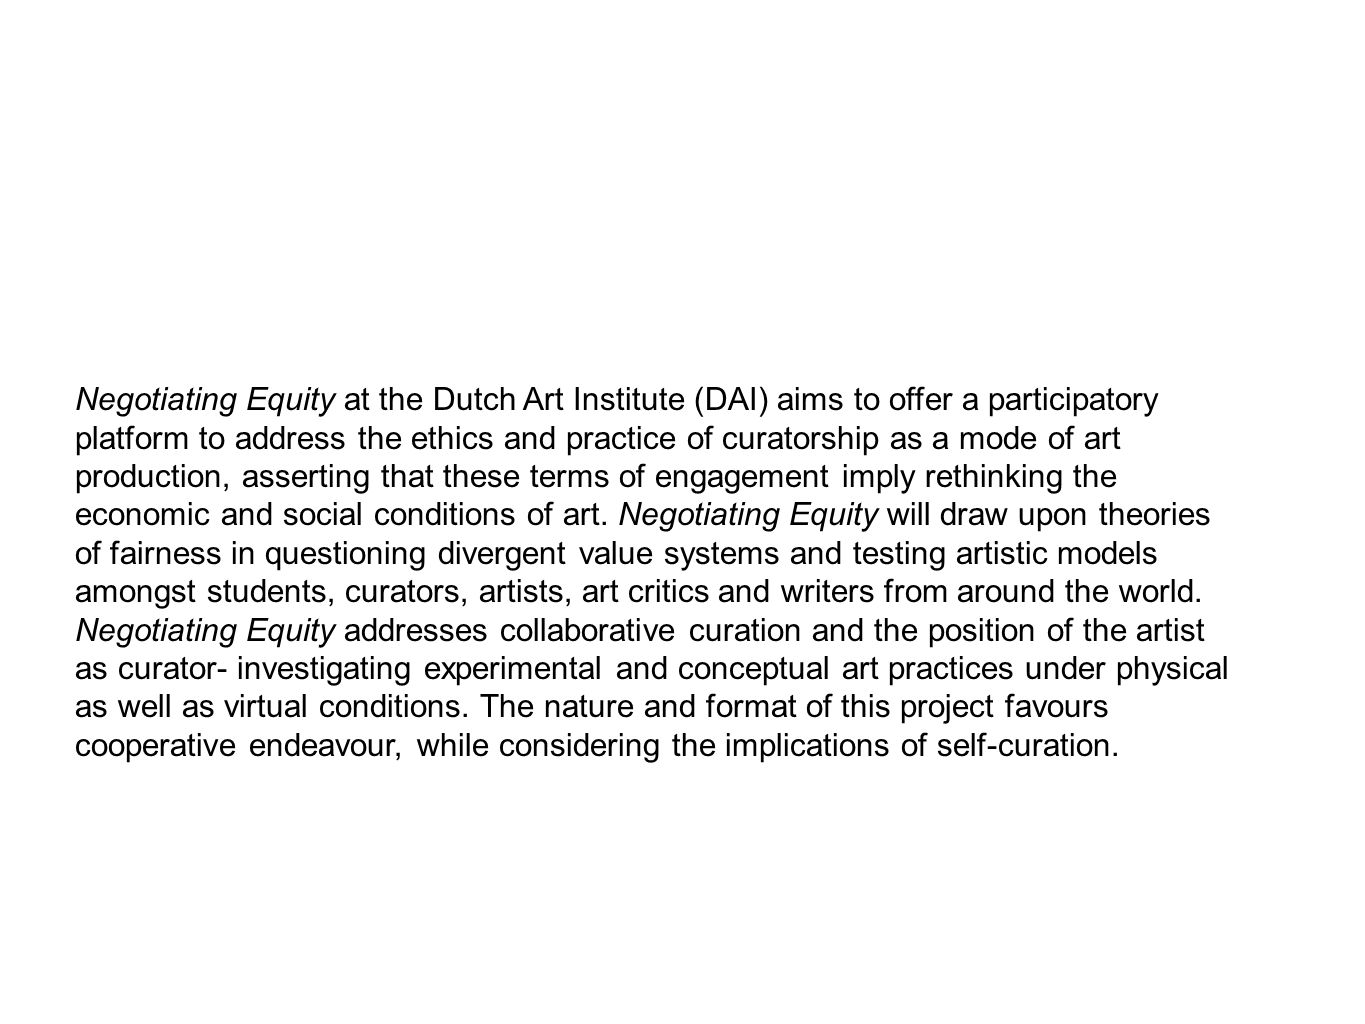 Negotiating Equity at the Dutch Art Institute (DAI) aims to offer a participatory platform to address the ethics and practice of curatorship as a mode